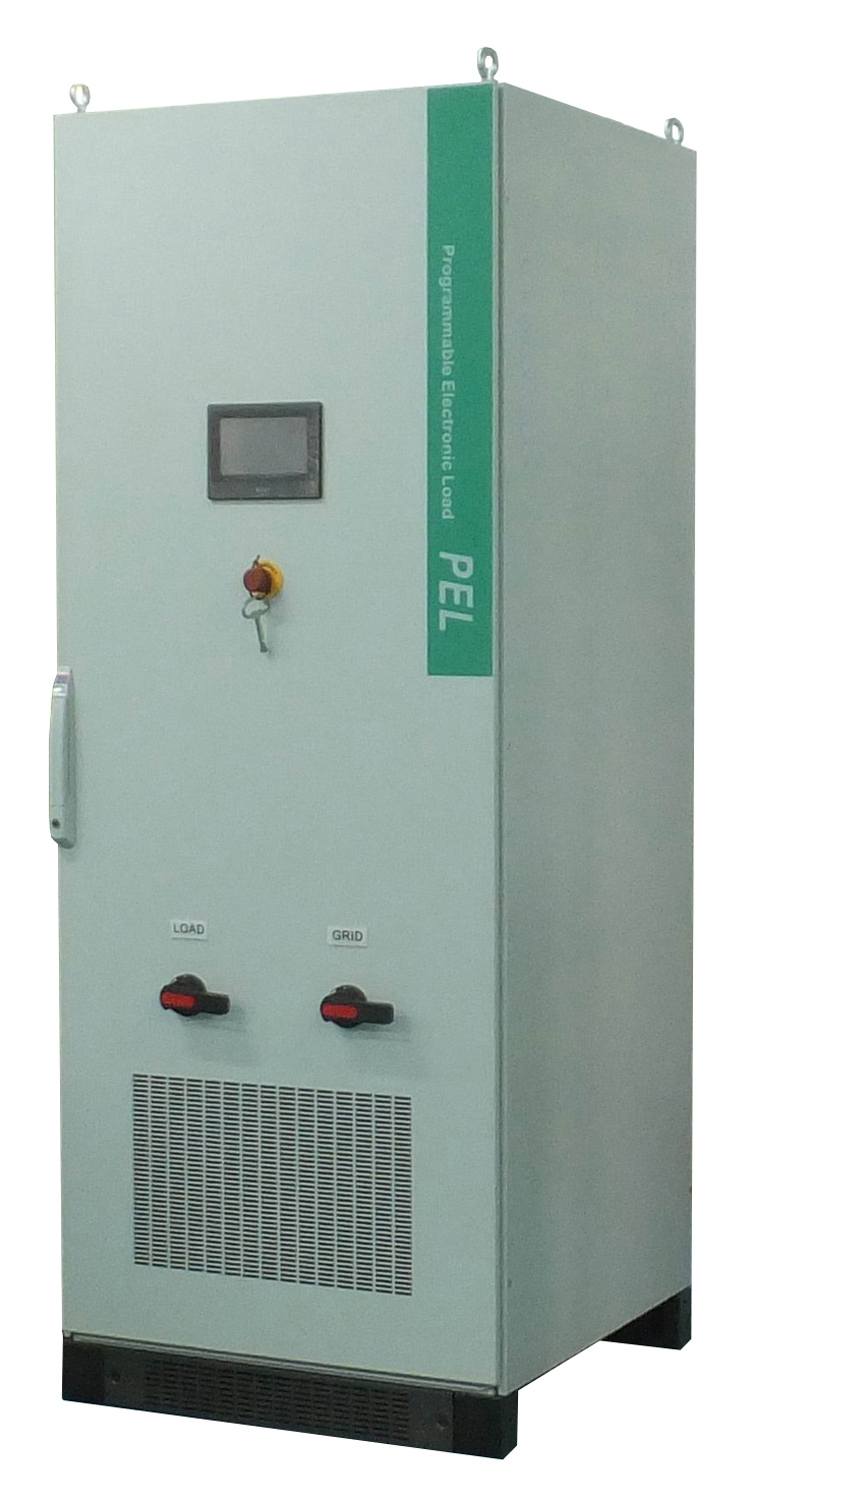 Intepro's regenerative AC load bank reduces energy costs up to 90%